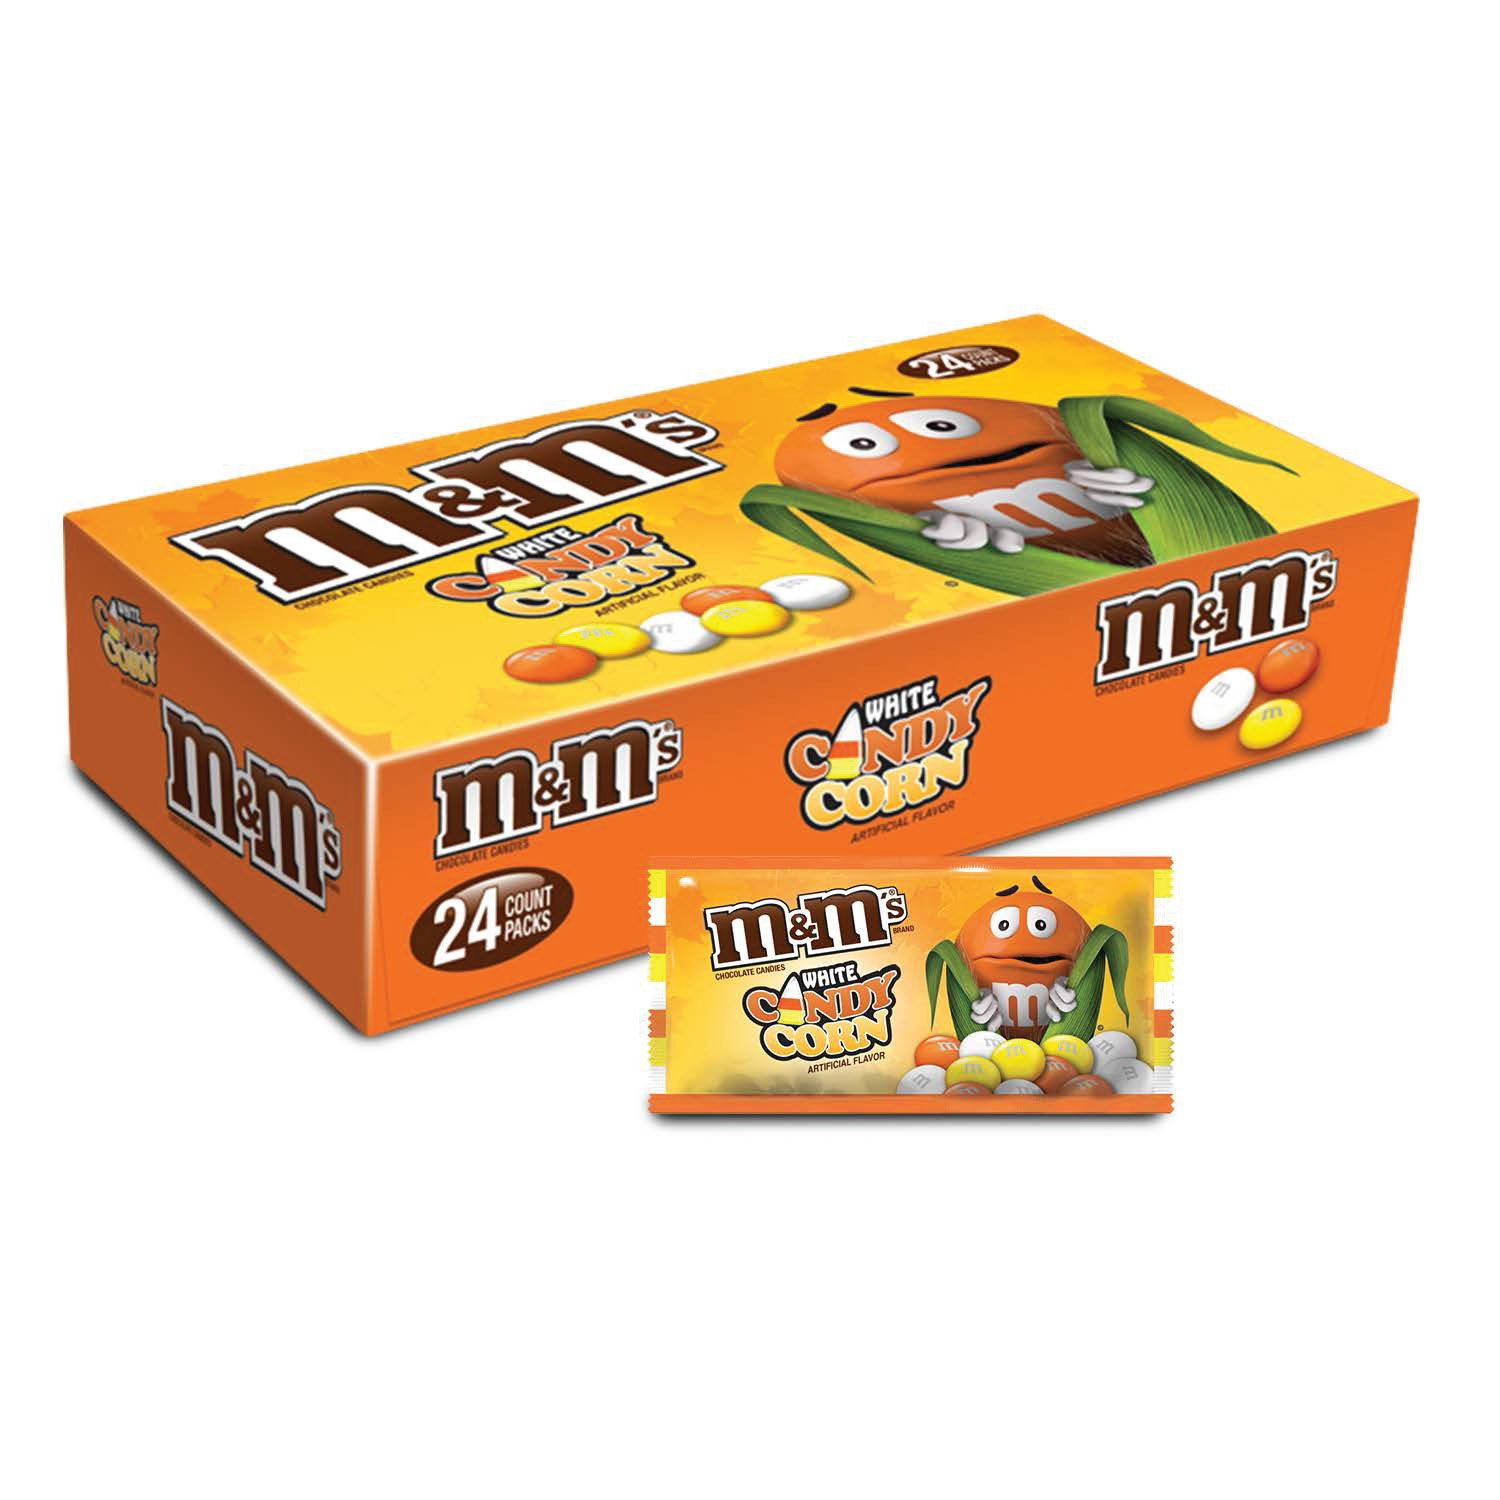 M&M'S White Chocolate Candy Corn Halloween Candy 1.5-Ounce Singles Pouches 24-Count Box by M&M'S